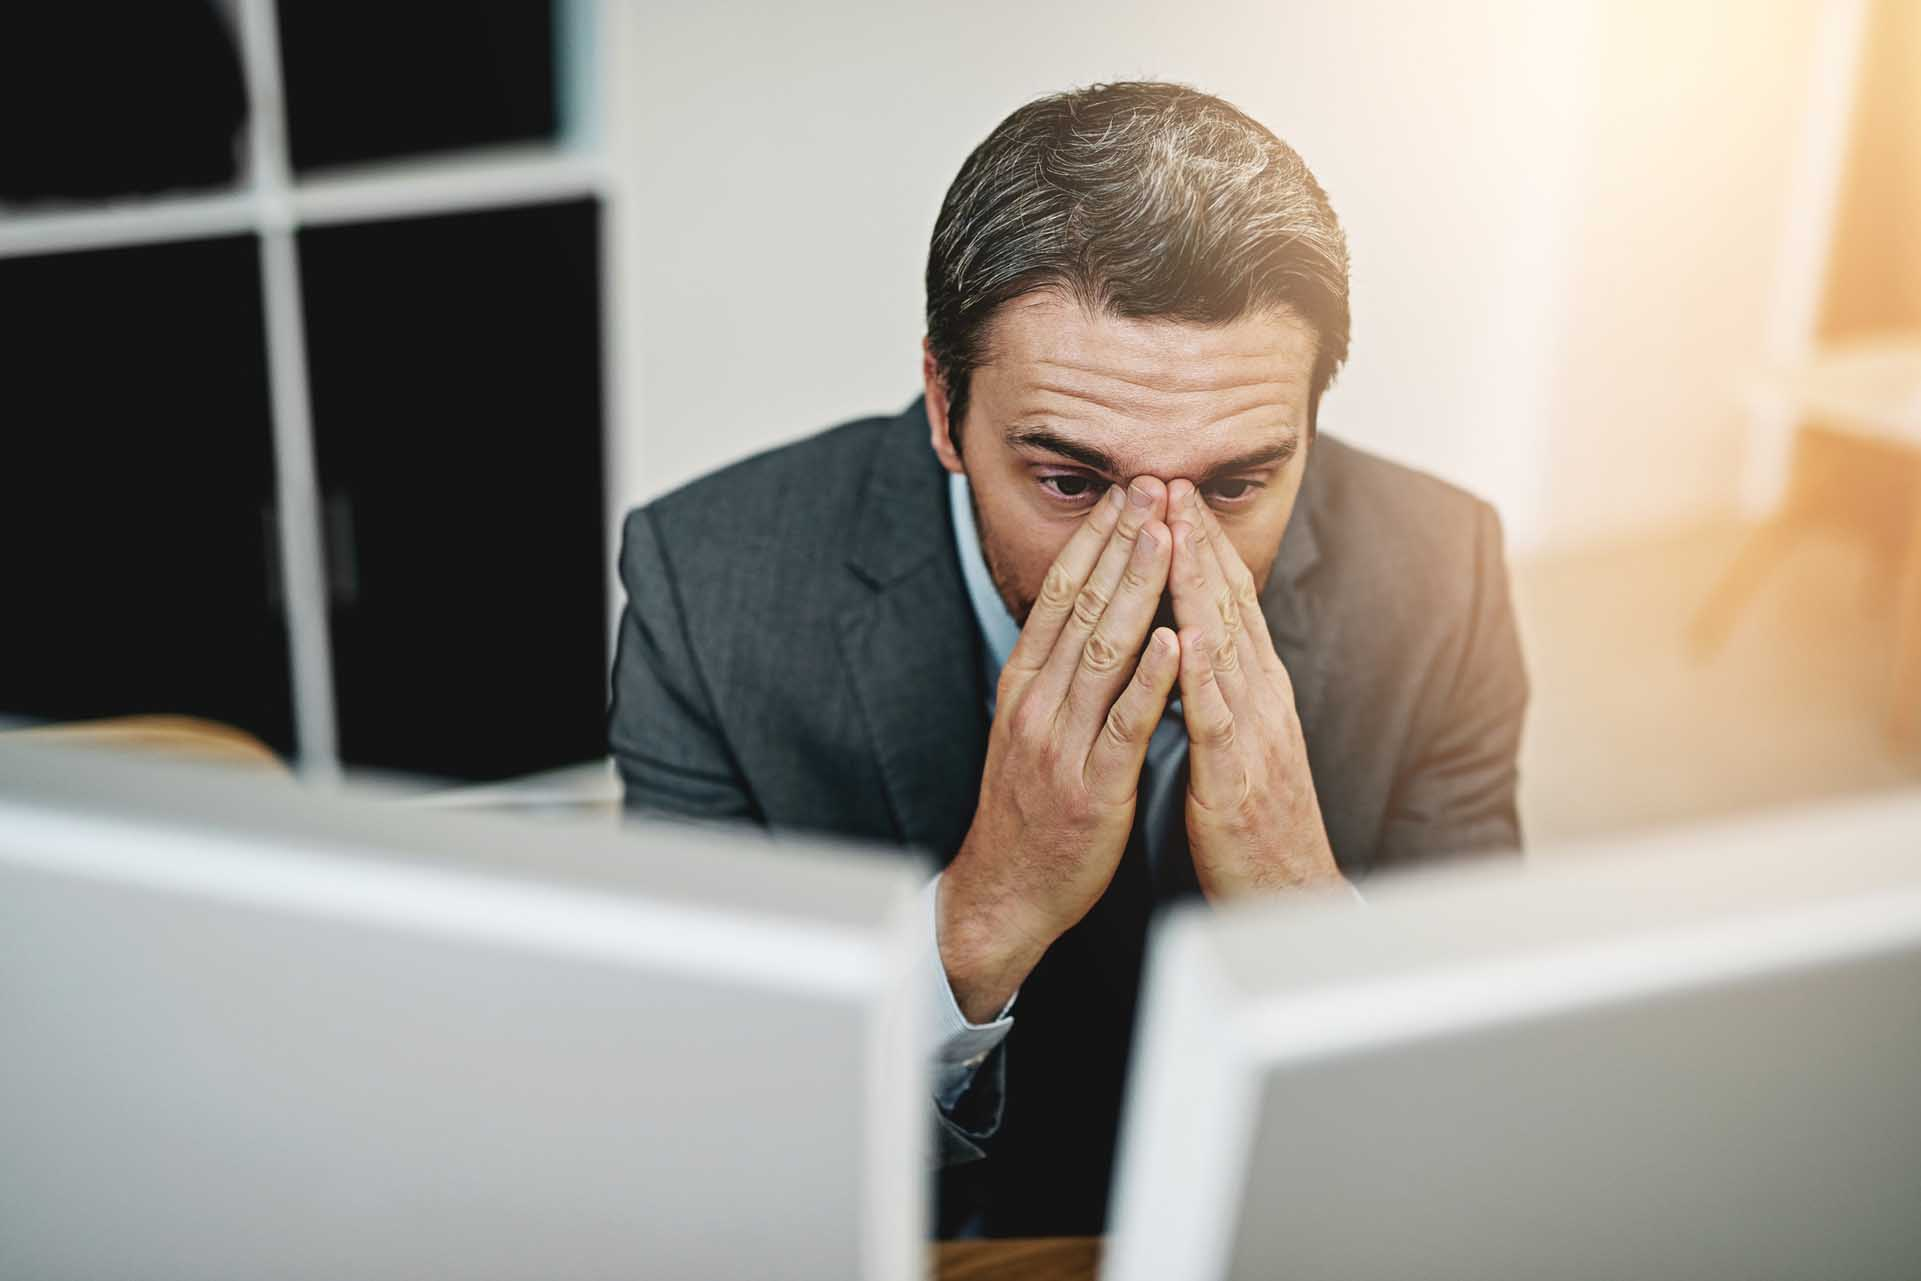 10 Online Marketing Mistakes and How to Avoid Them